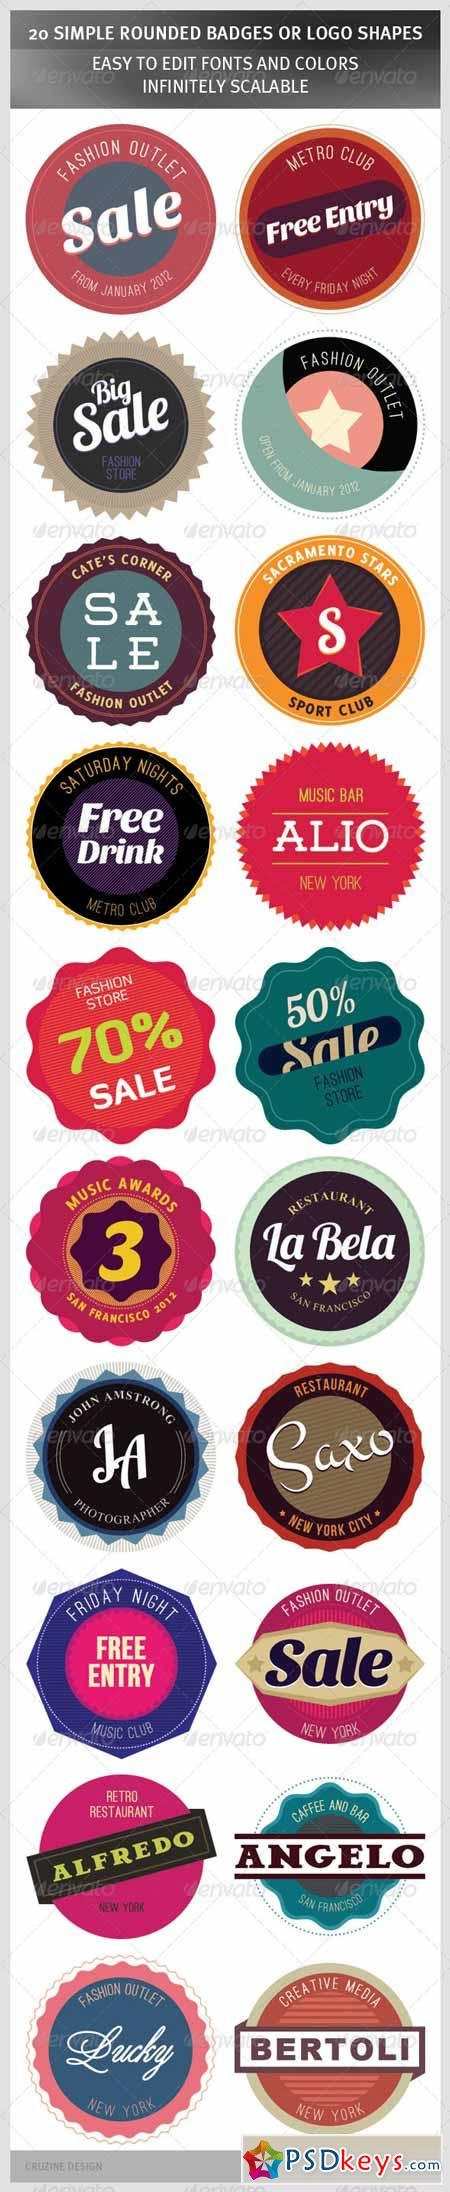 20 Simple Rounded Badges or Logo Shapes 1320108